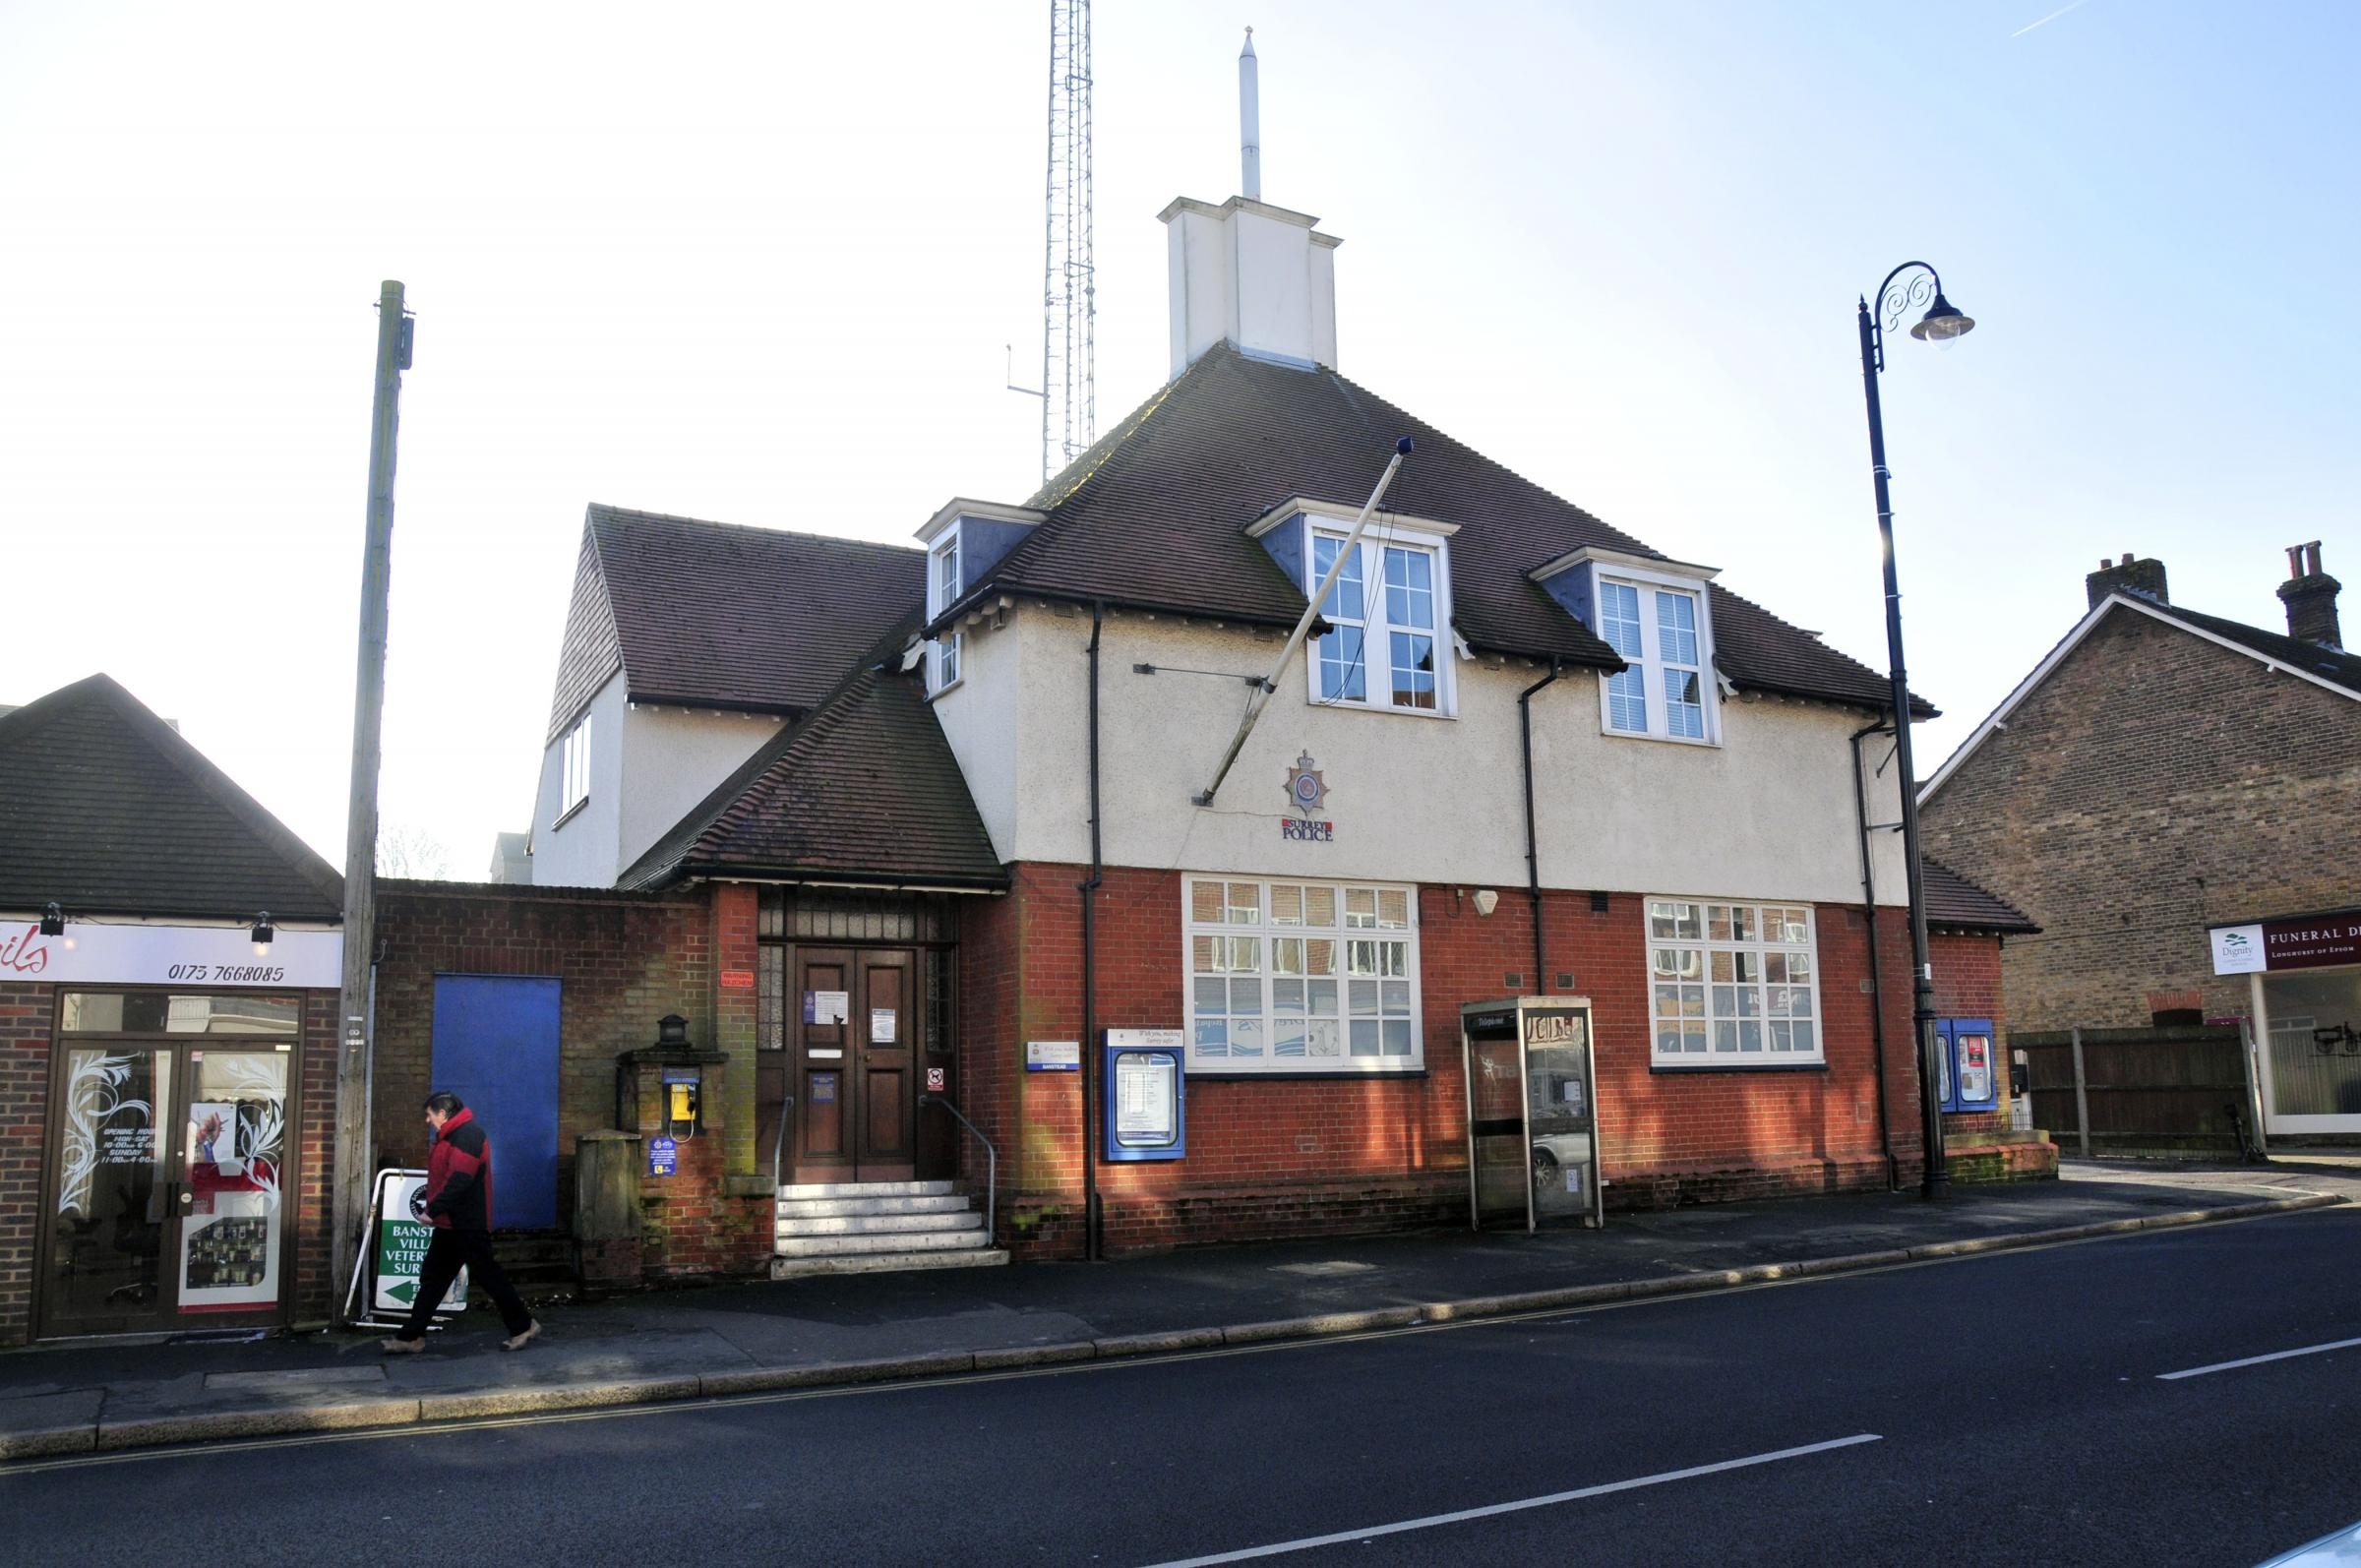 The former police station in Banstead High Street